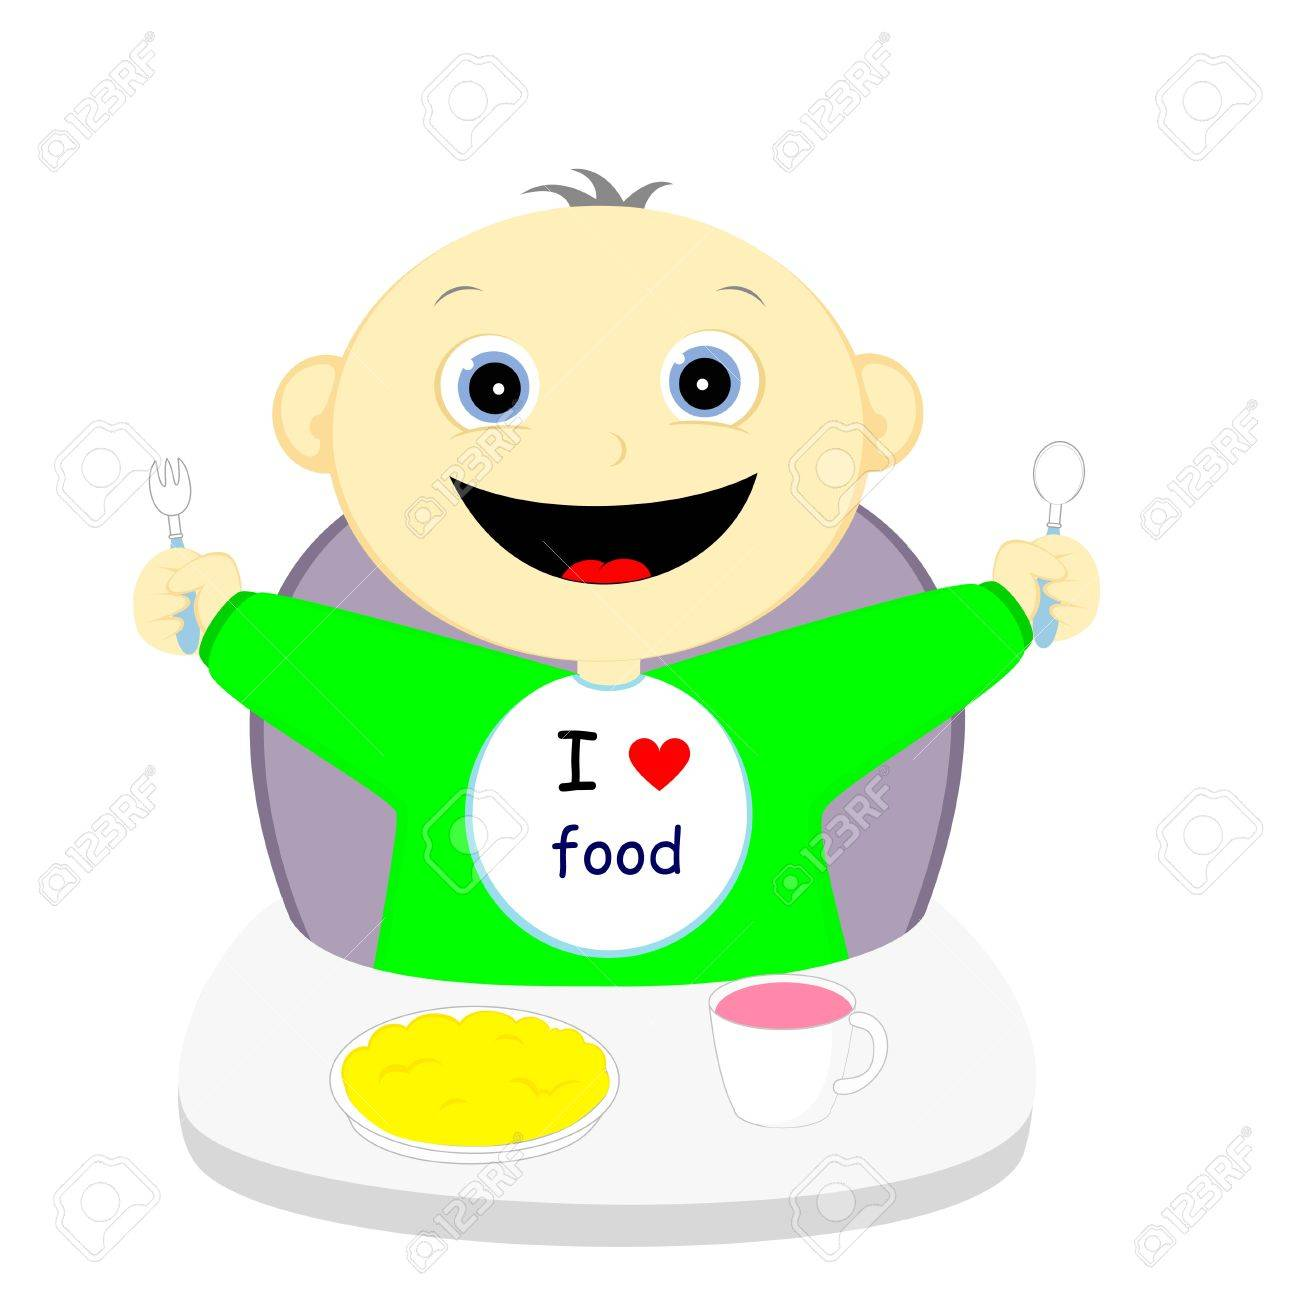 hungry child happy upcoming meal - 22149927